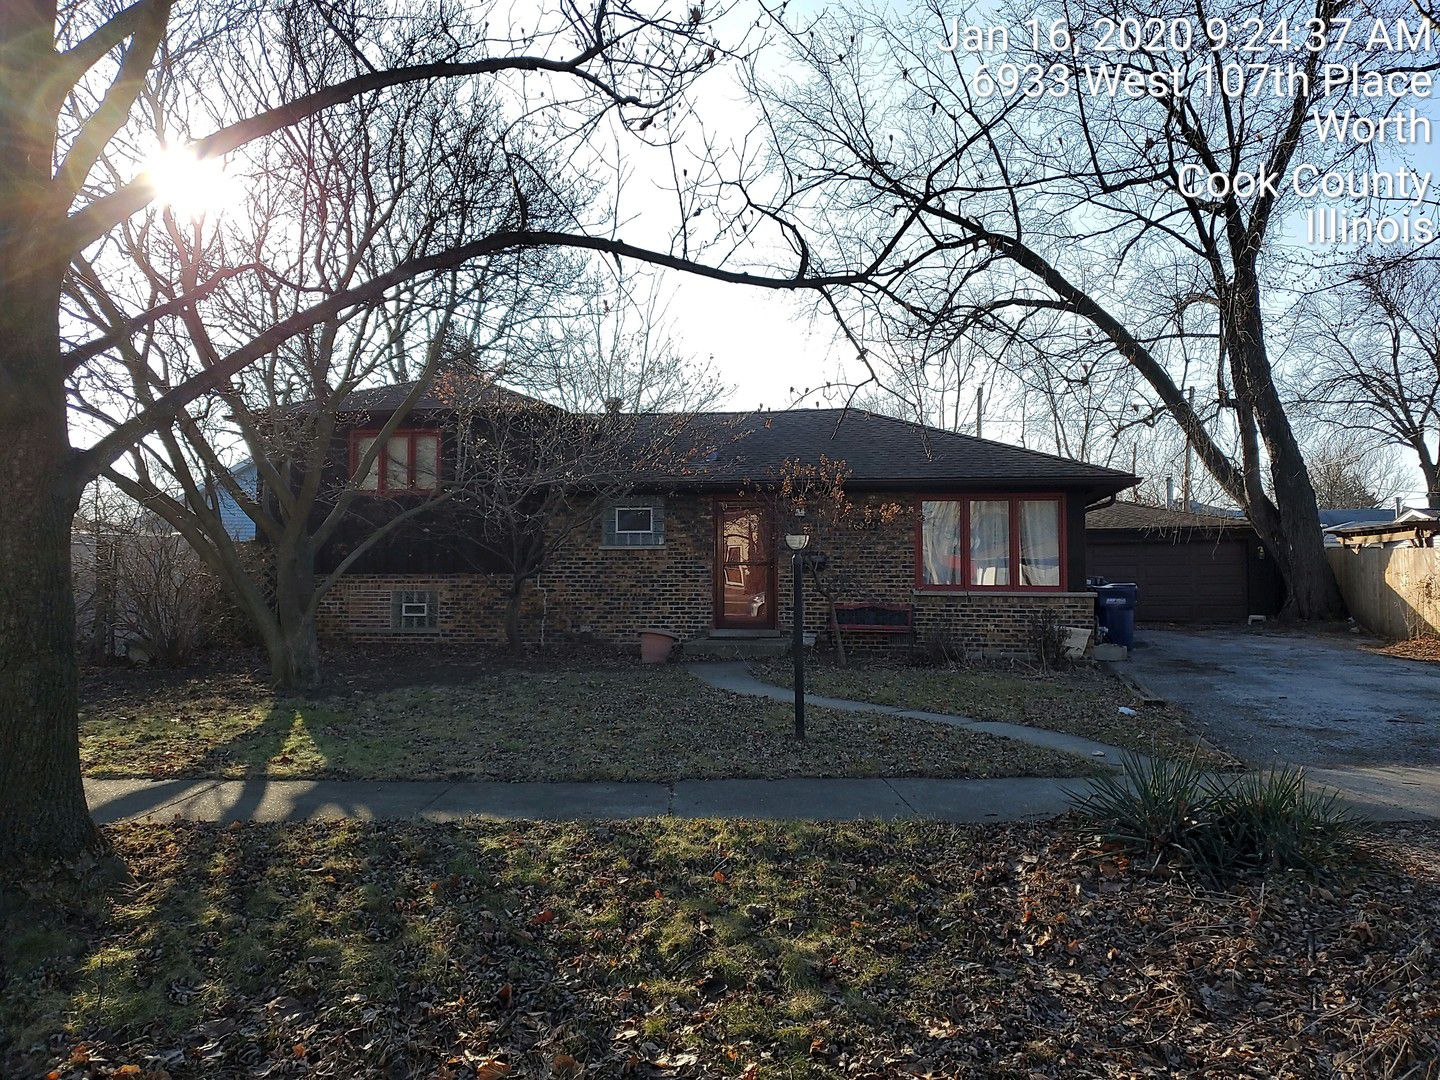 6933 W 107th Place